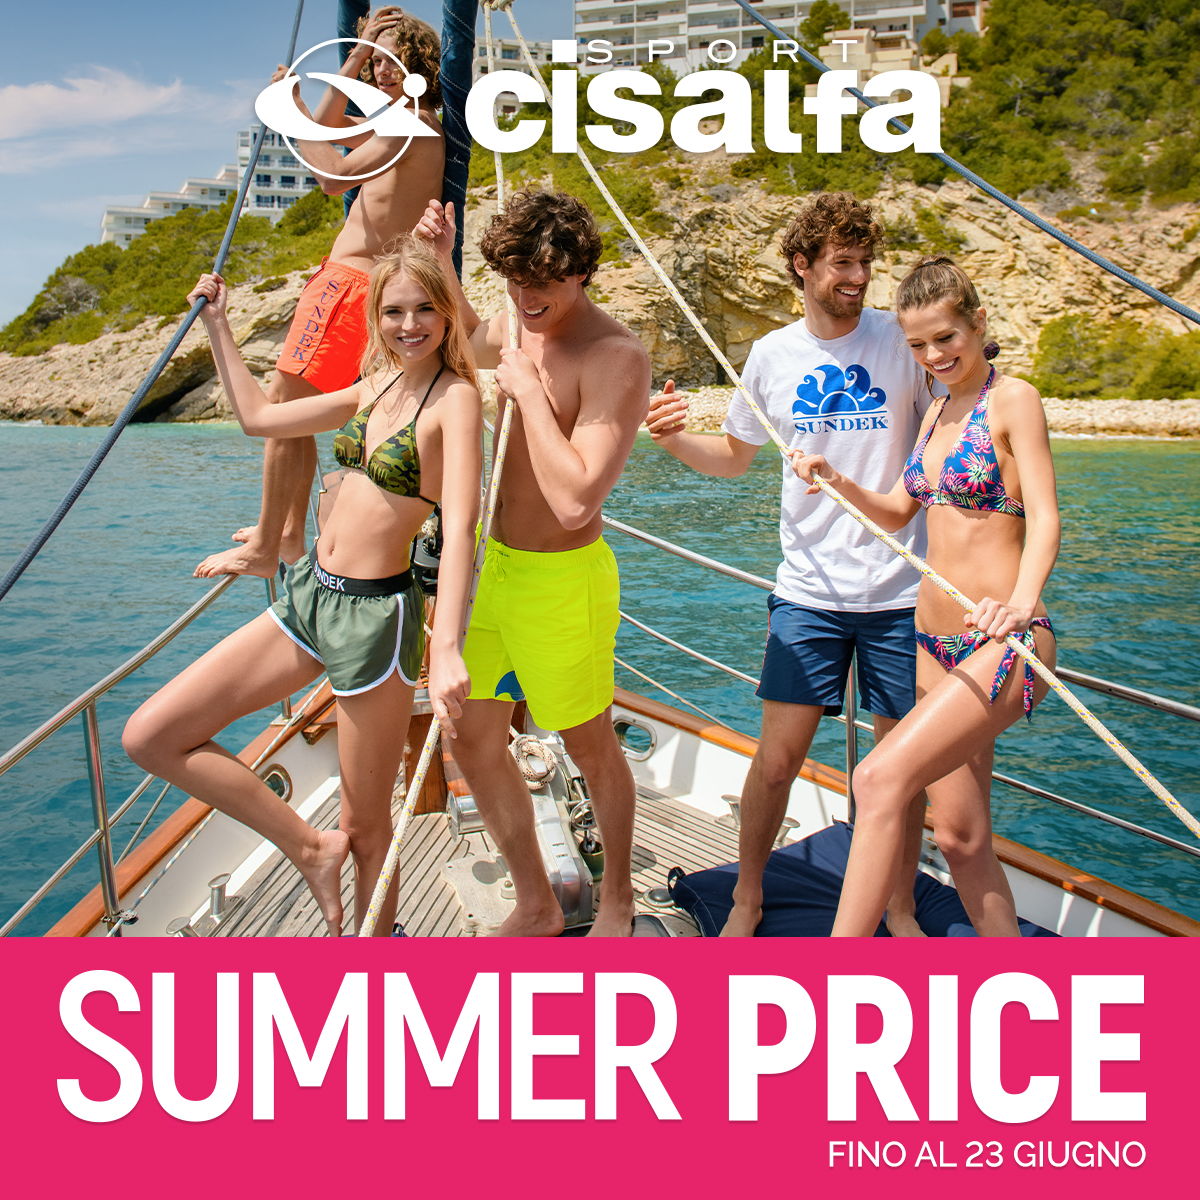 scopri i Summer price!